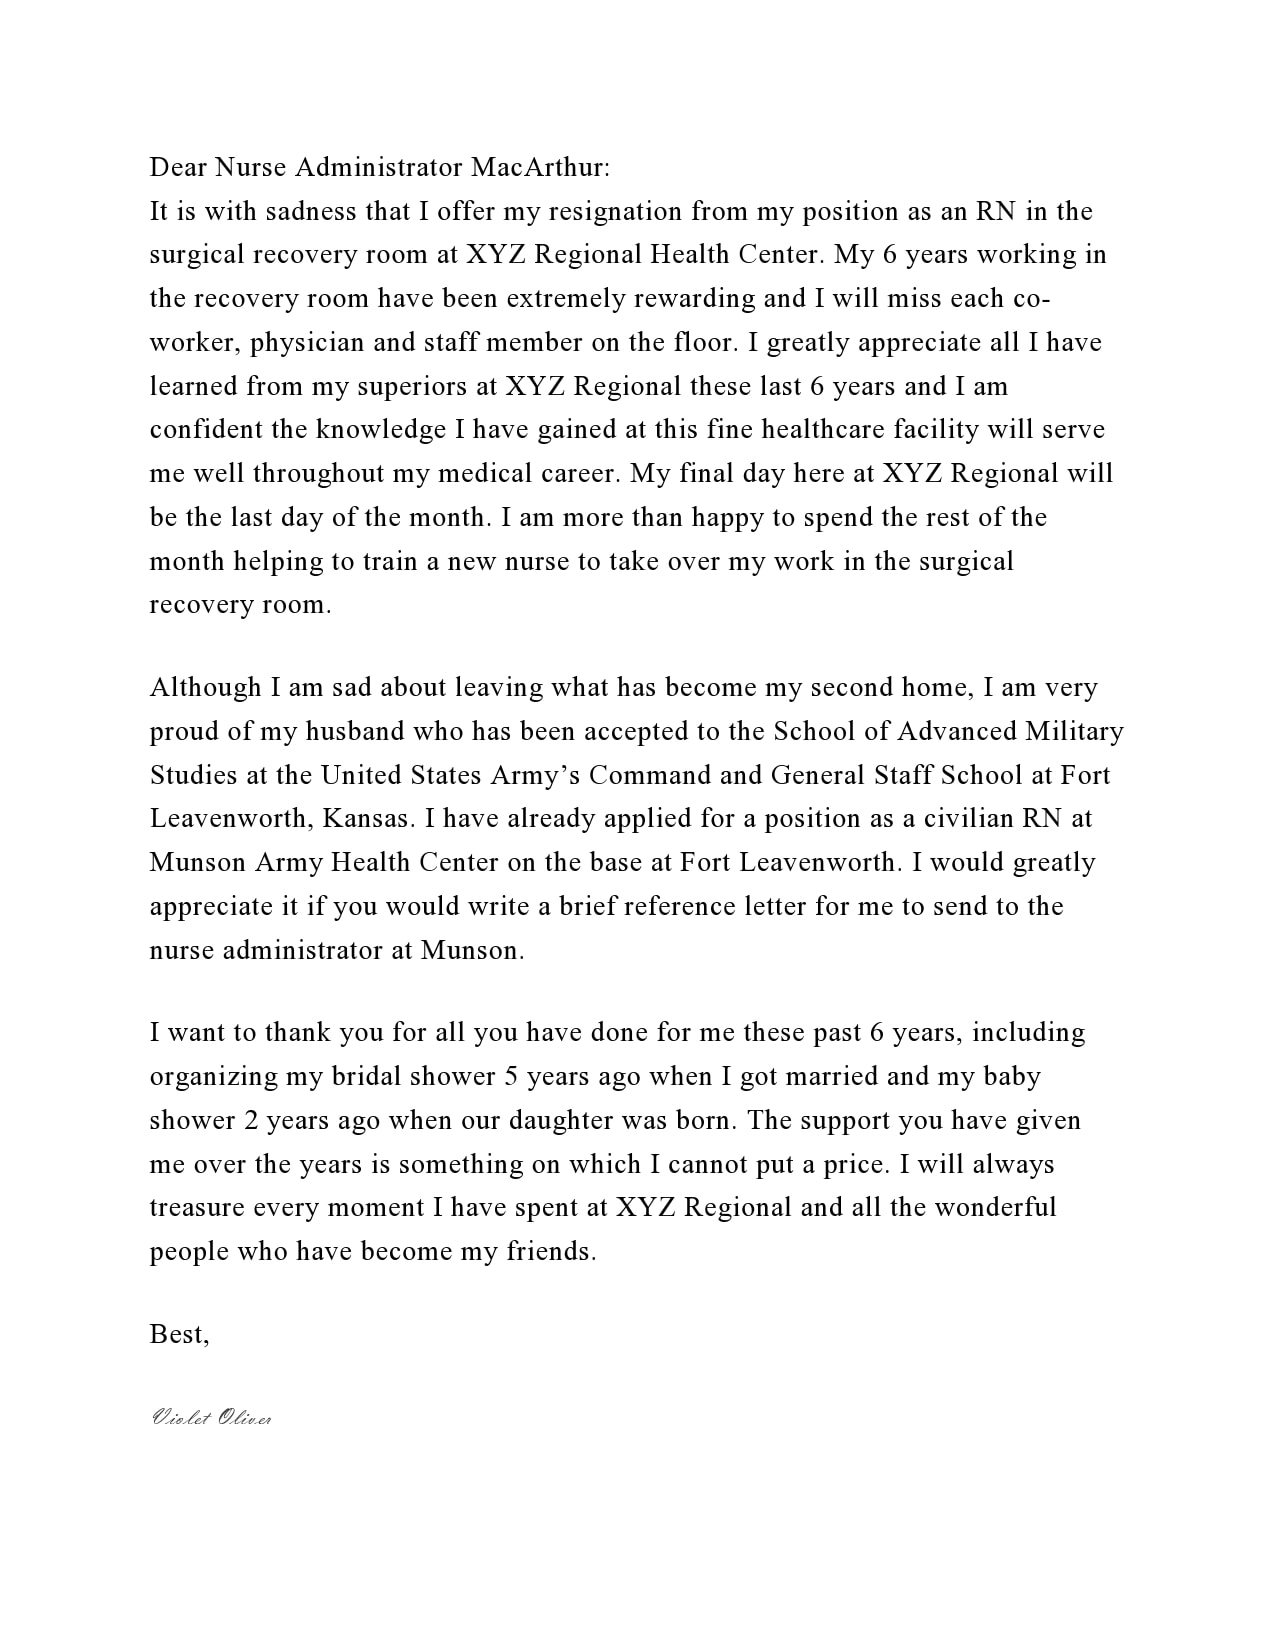 nursing resignation letter 10